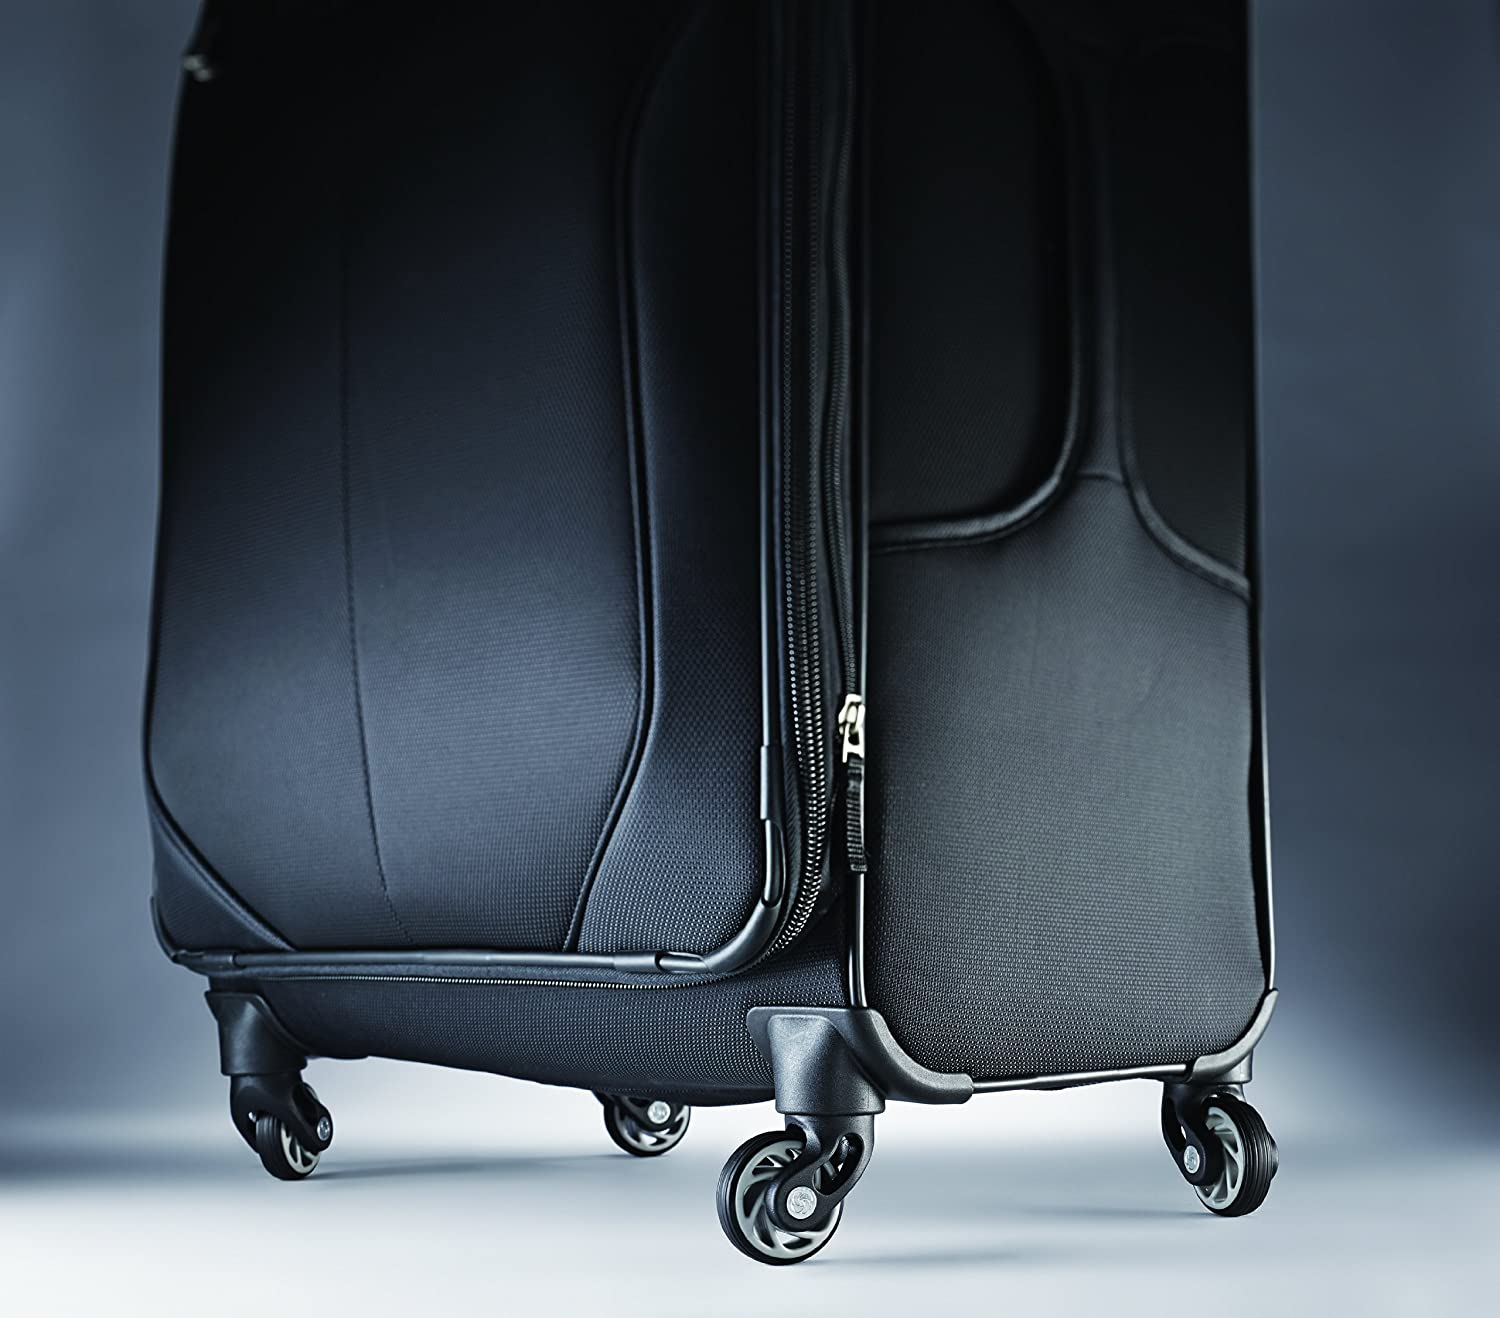 One Size Blue Samsonite Luggage Lift Spinner 29 Suitcases